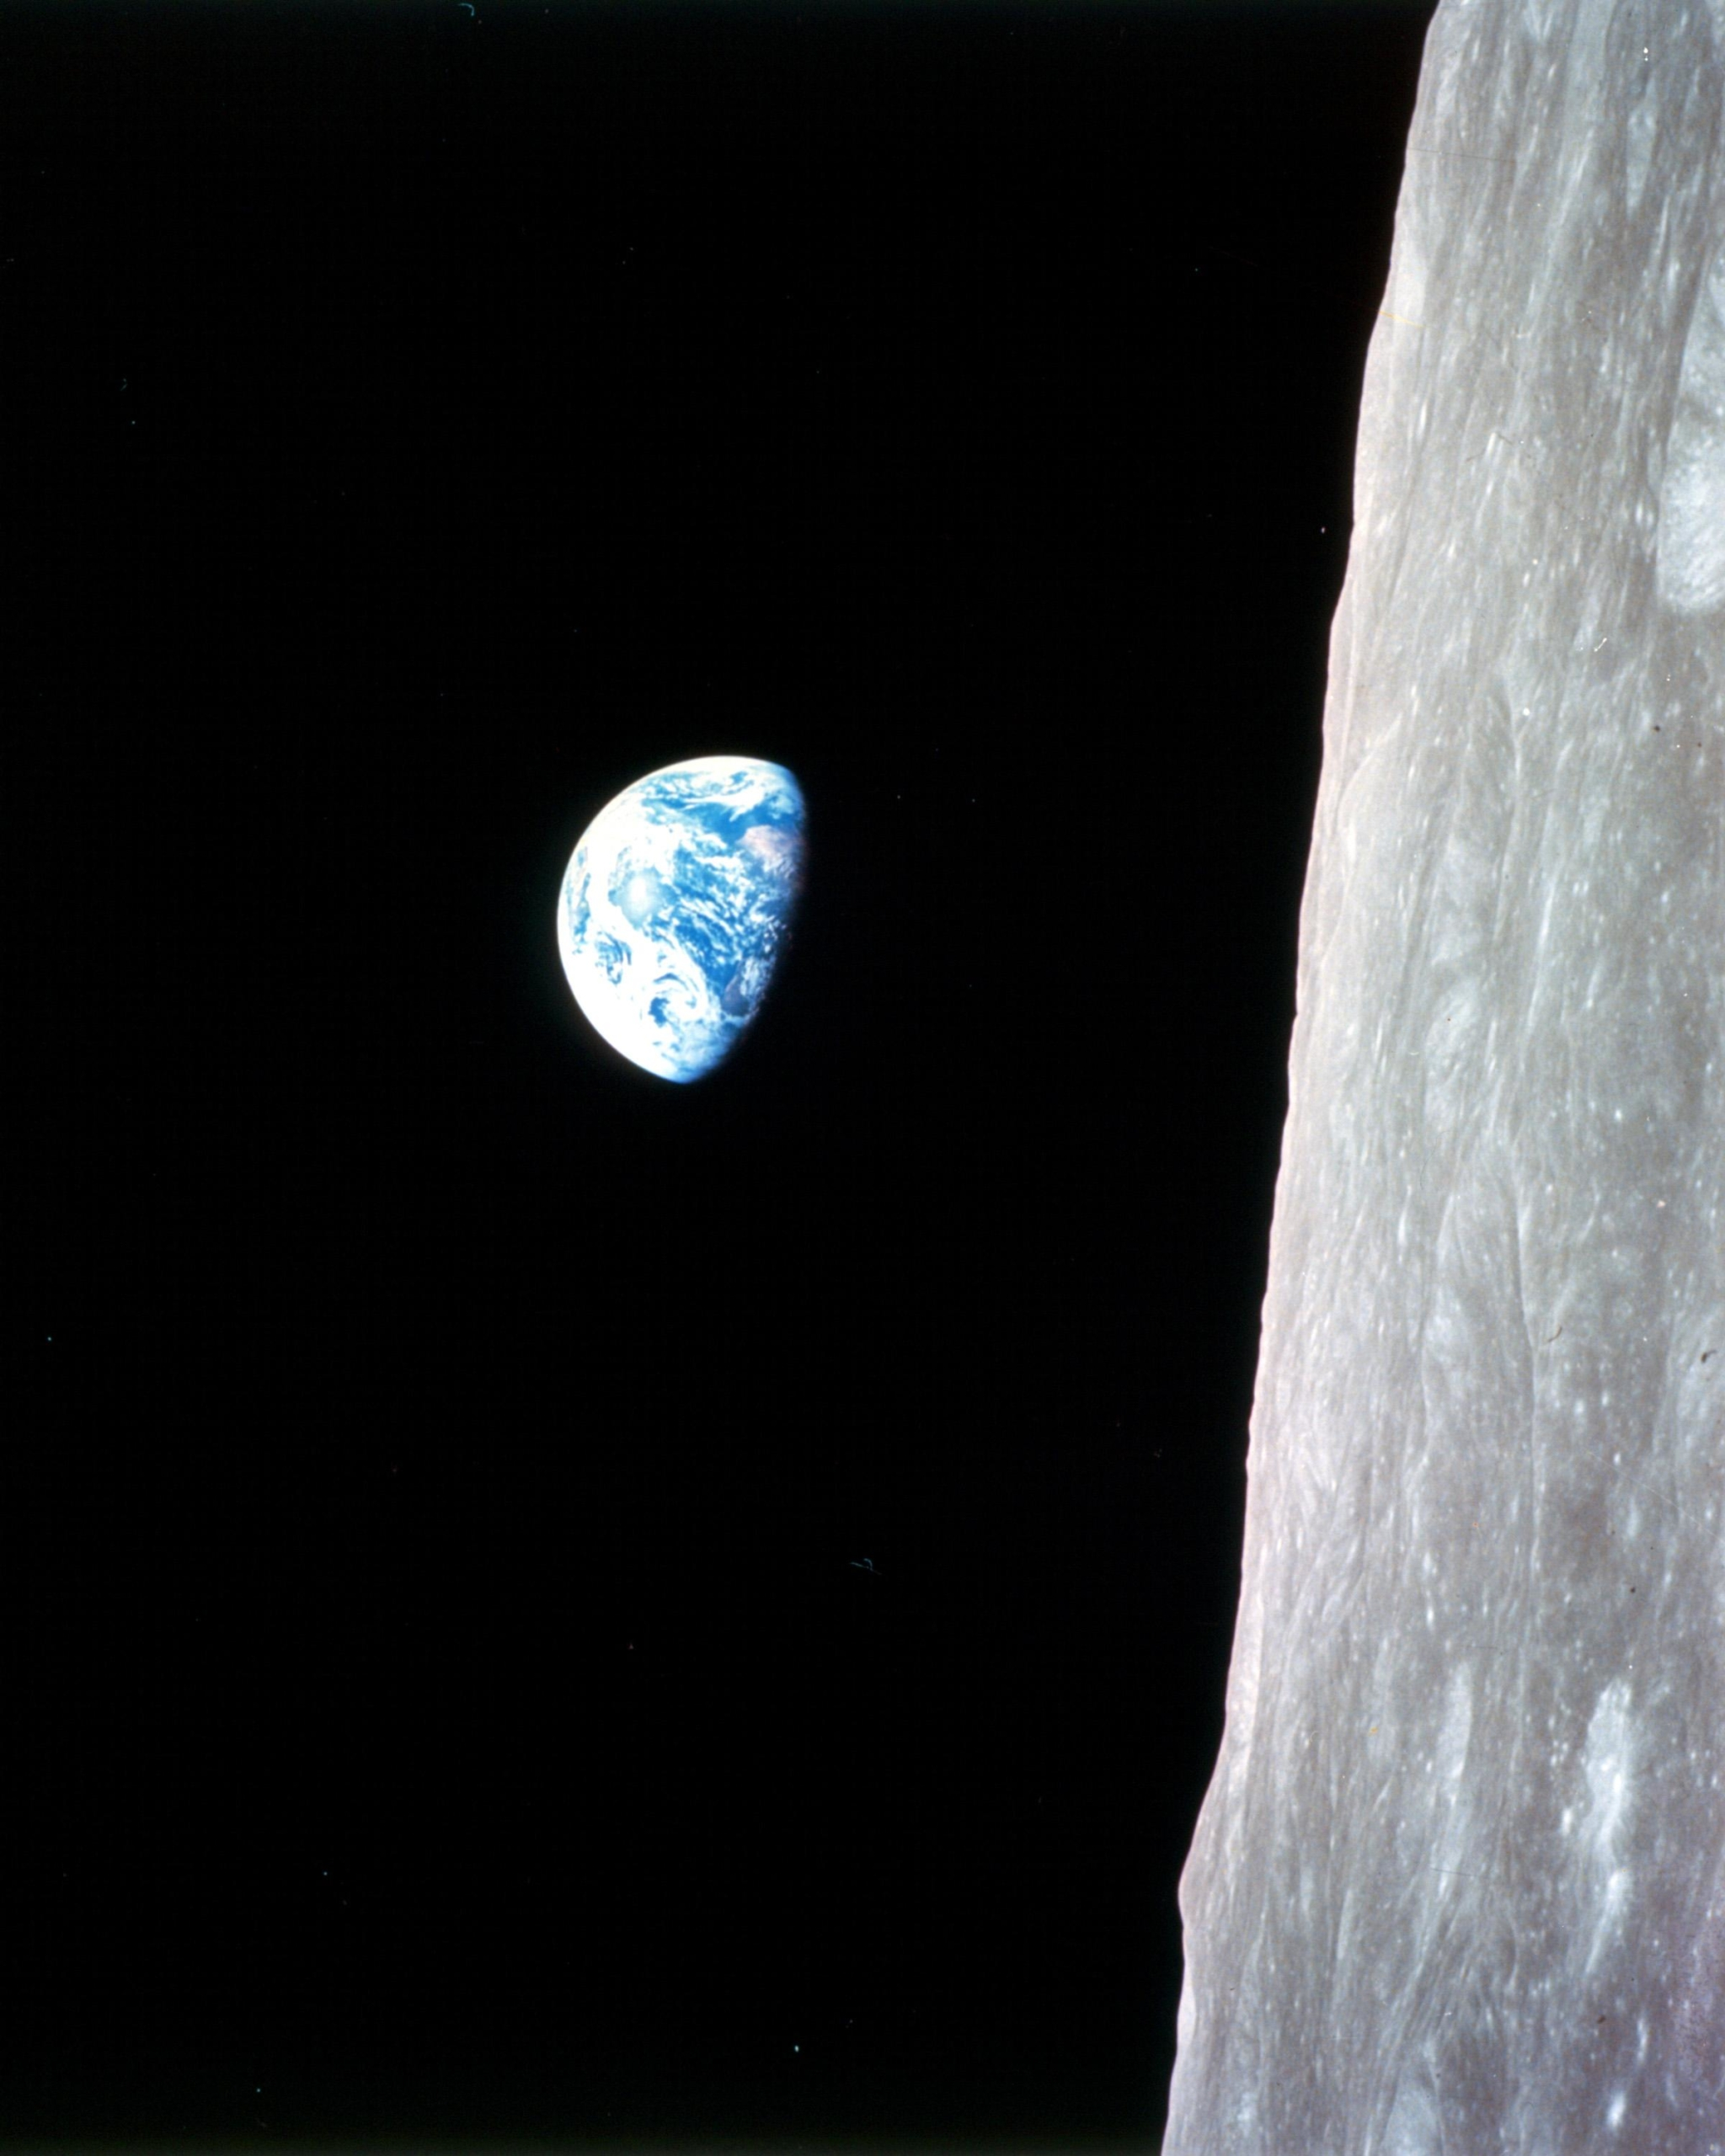 Photo of Earth within black galaxy from Apollo 8 near the moon